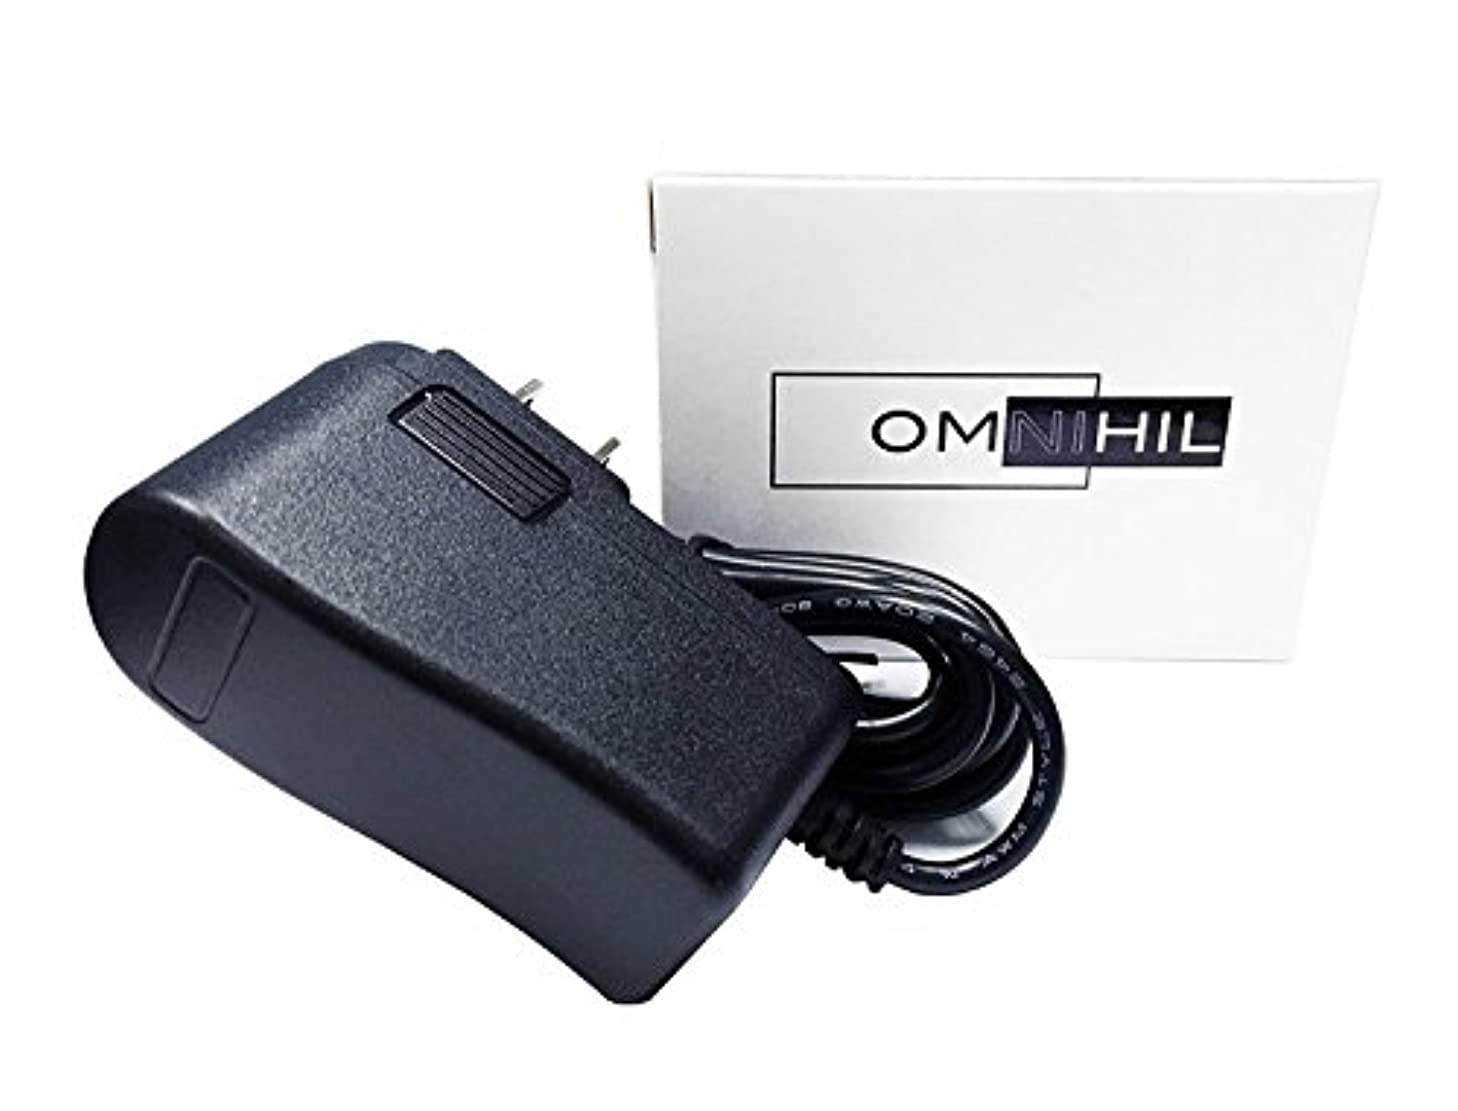 Omnihil AC/DC Power Adapter Compatible with Fujitsu ScanSnap S1300i S1300 PA03643-B015 Scanner Power Supply Wall Charger